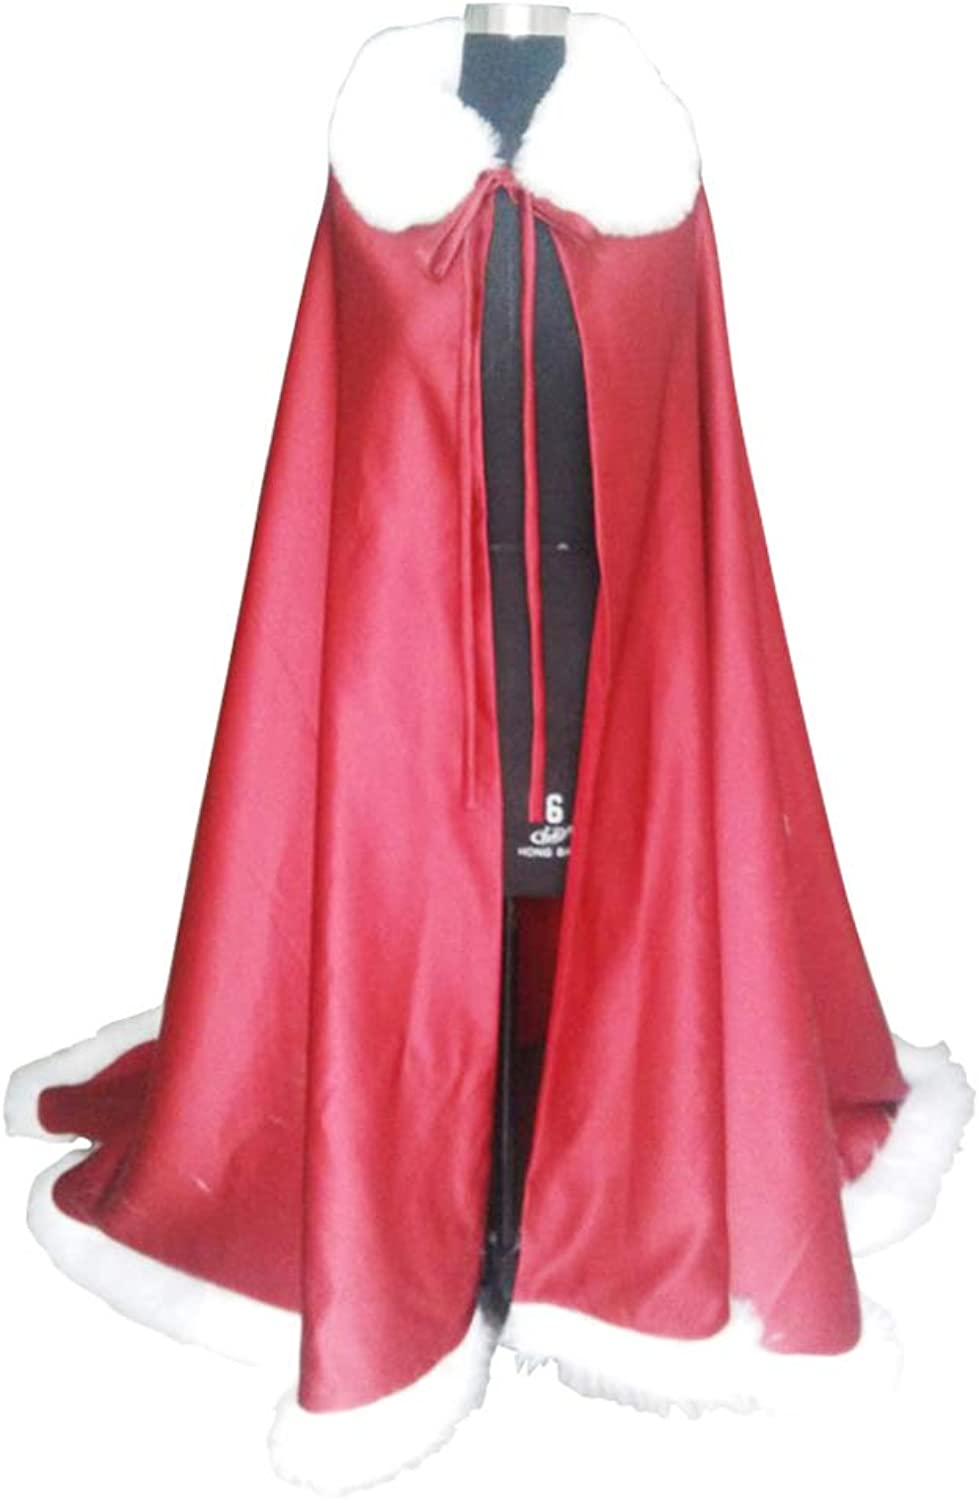 COUCOU Age Wedding Cape Cloak with Faux Fur Collar for Princess Bride Winter Coat Long